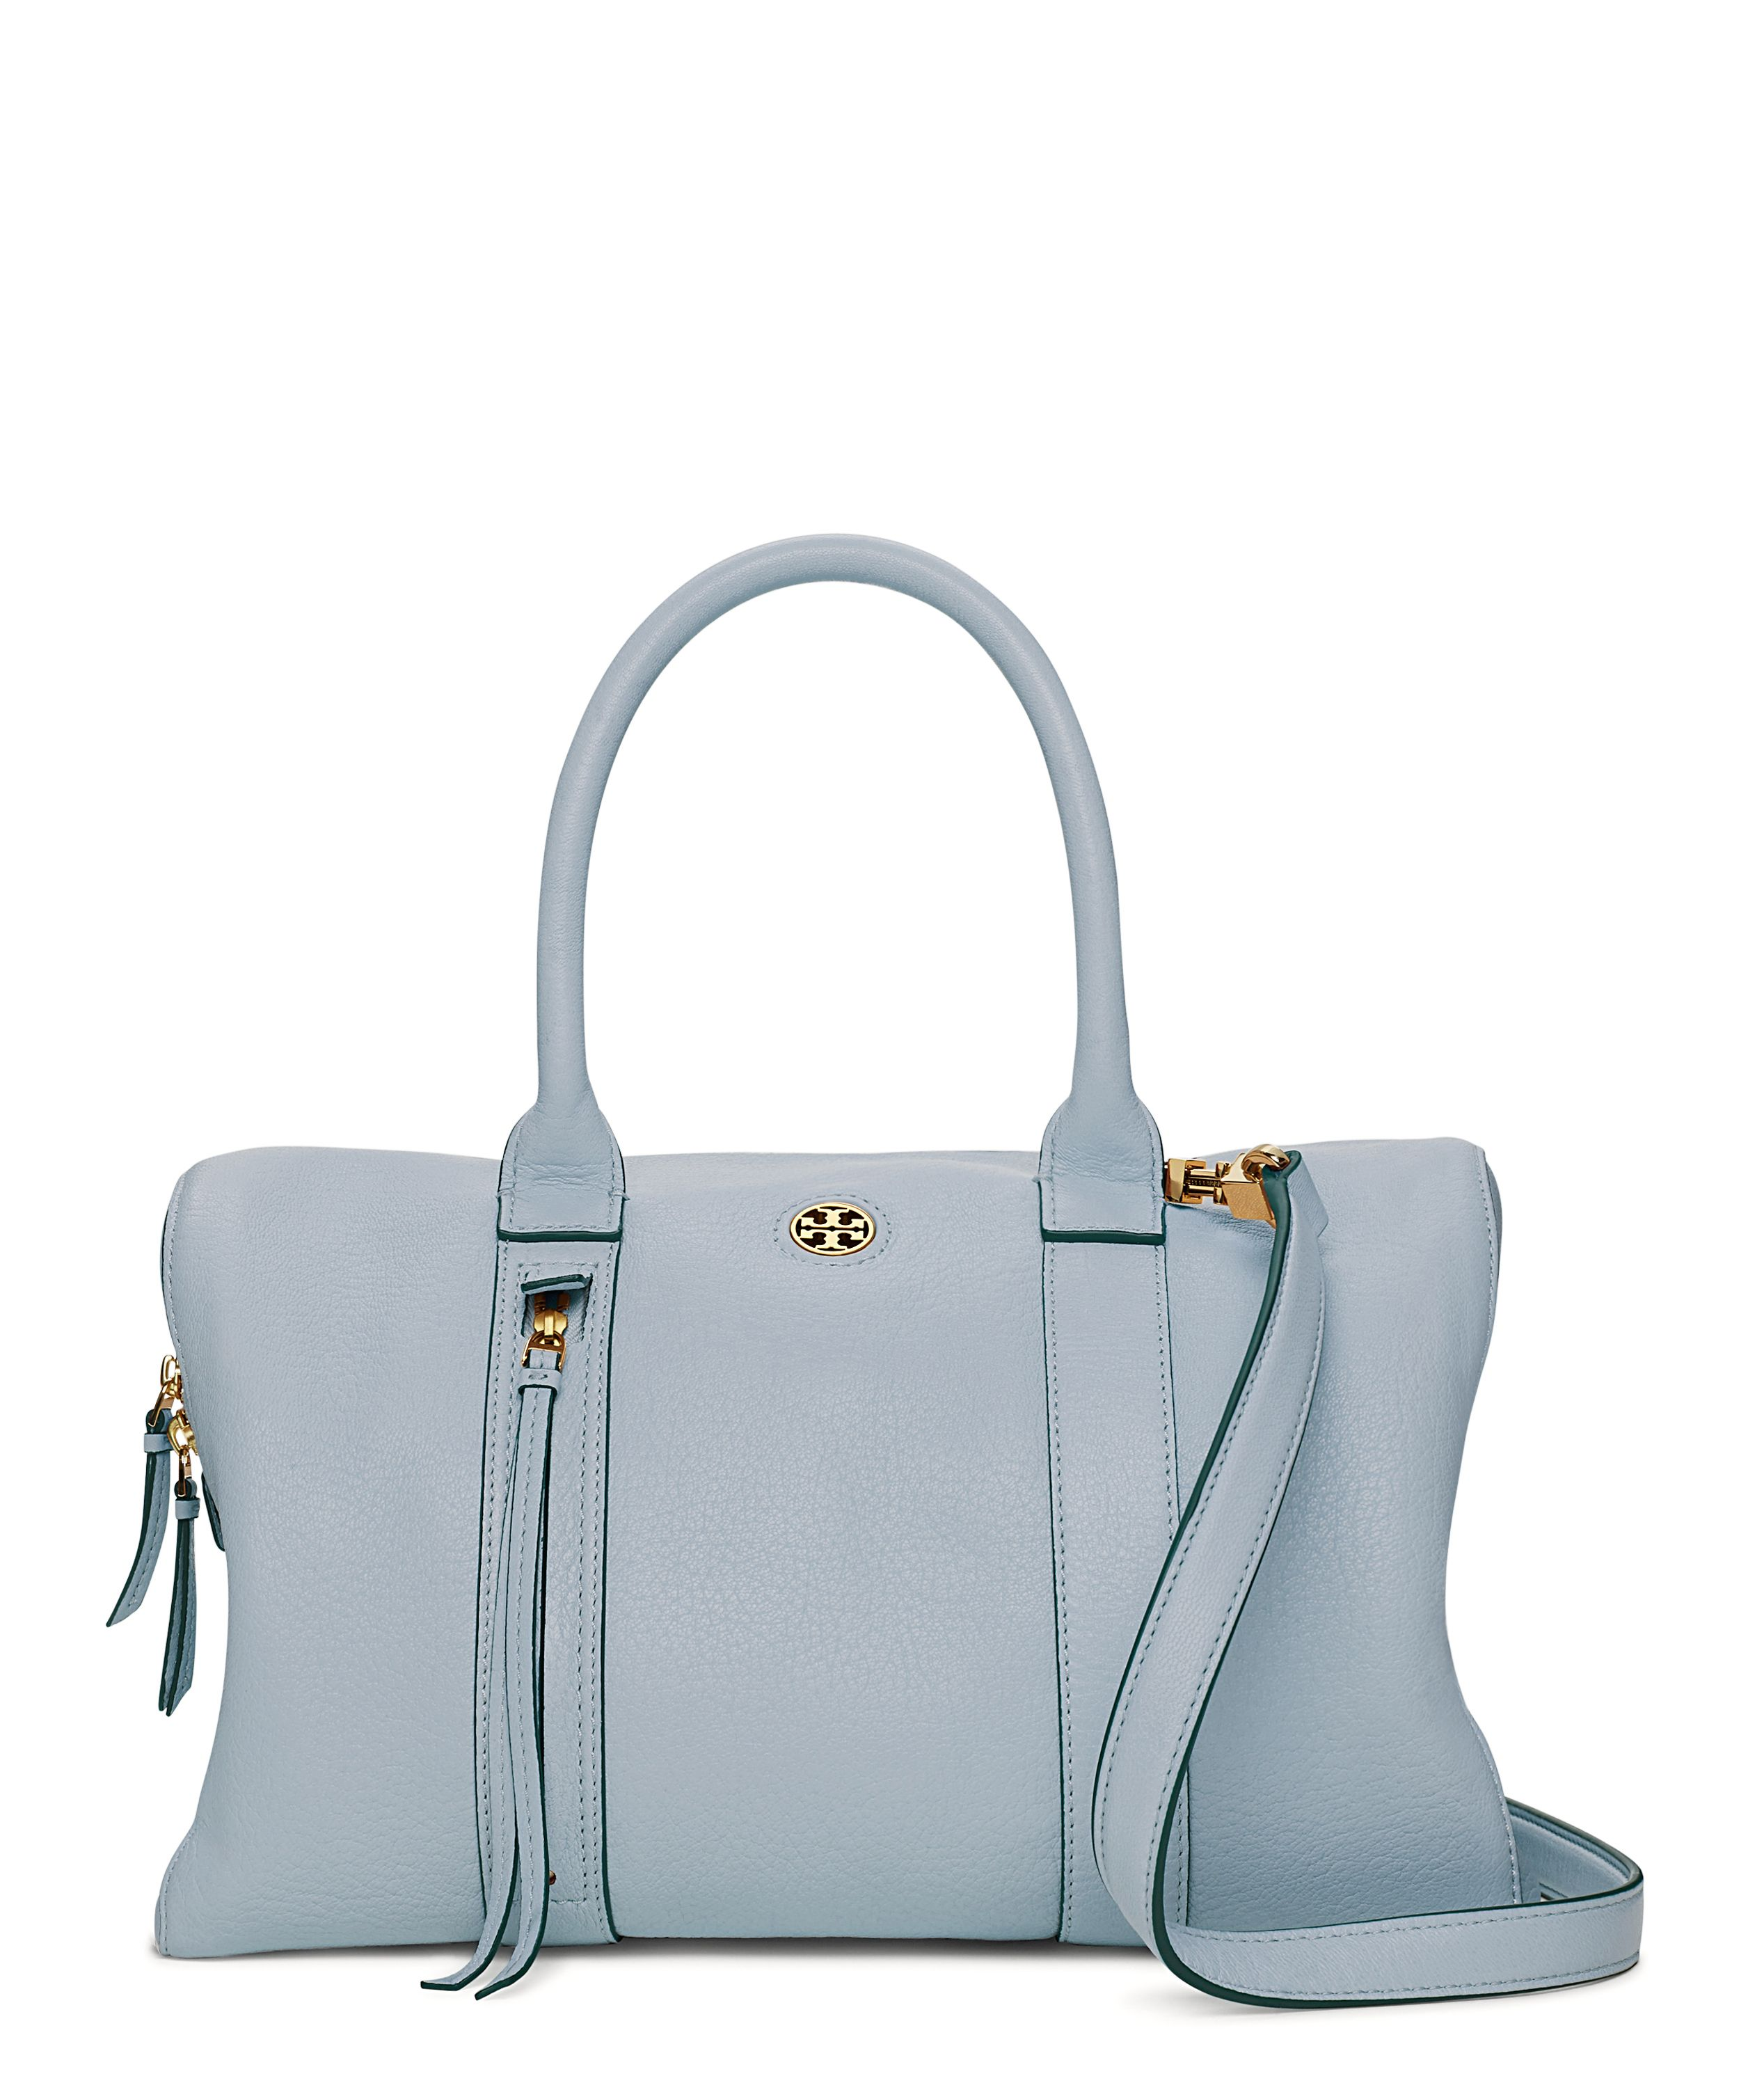 4e9928d0900 The Parker Leather Tote. Tory Burch Blue Cloud Brody Small Satchel